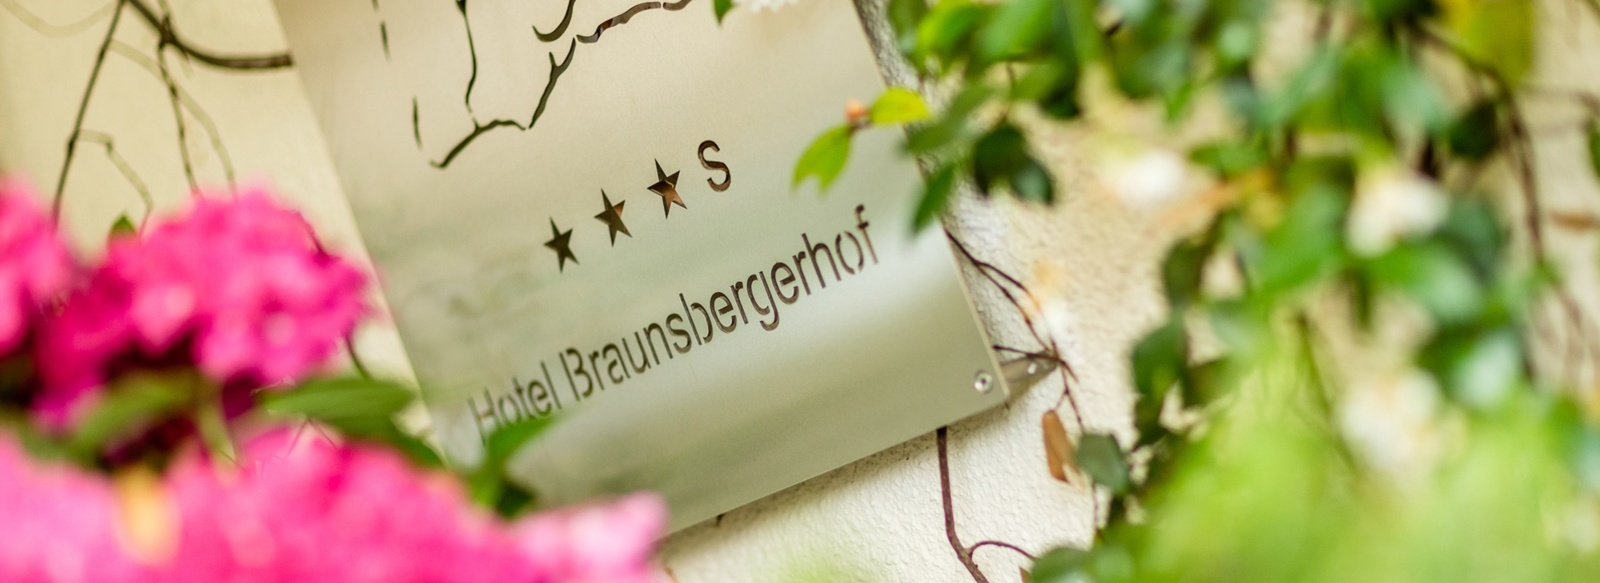 The hotel Braunsbergerhof it the beautyful Lana